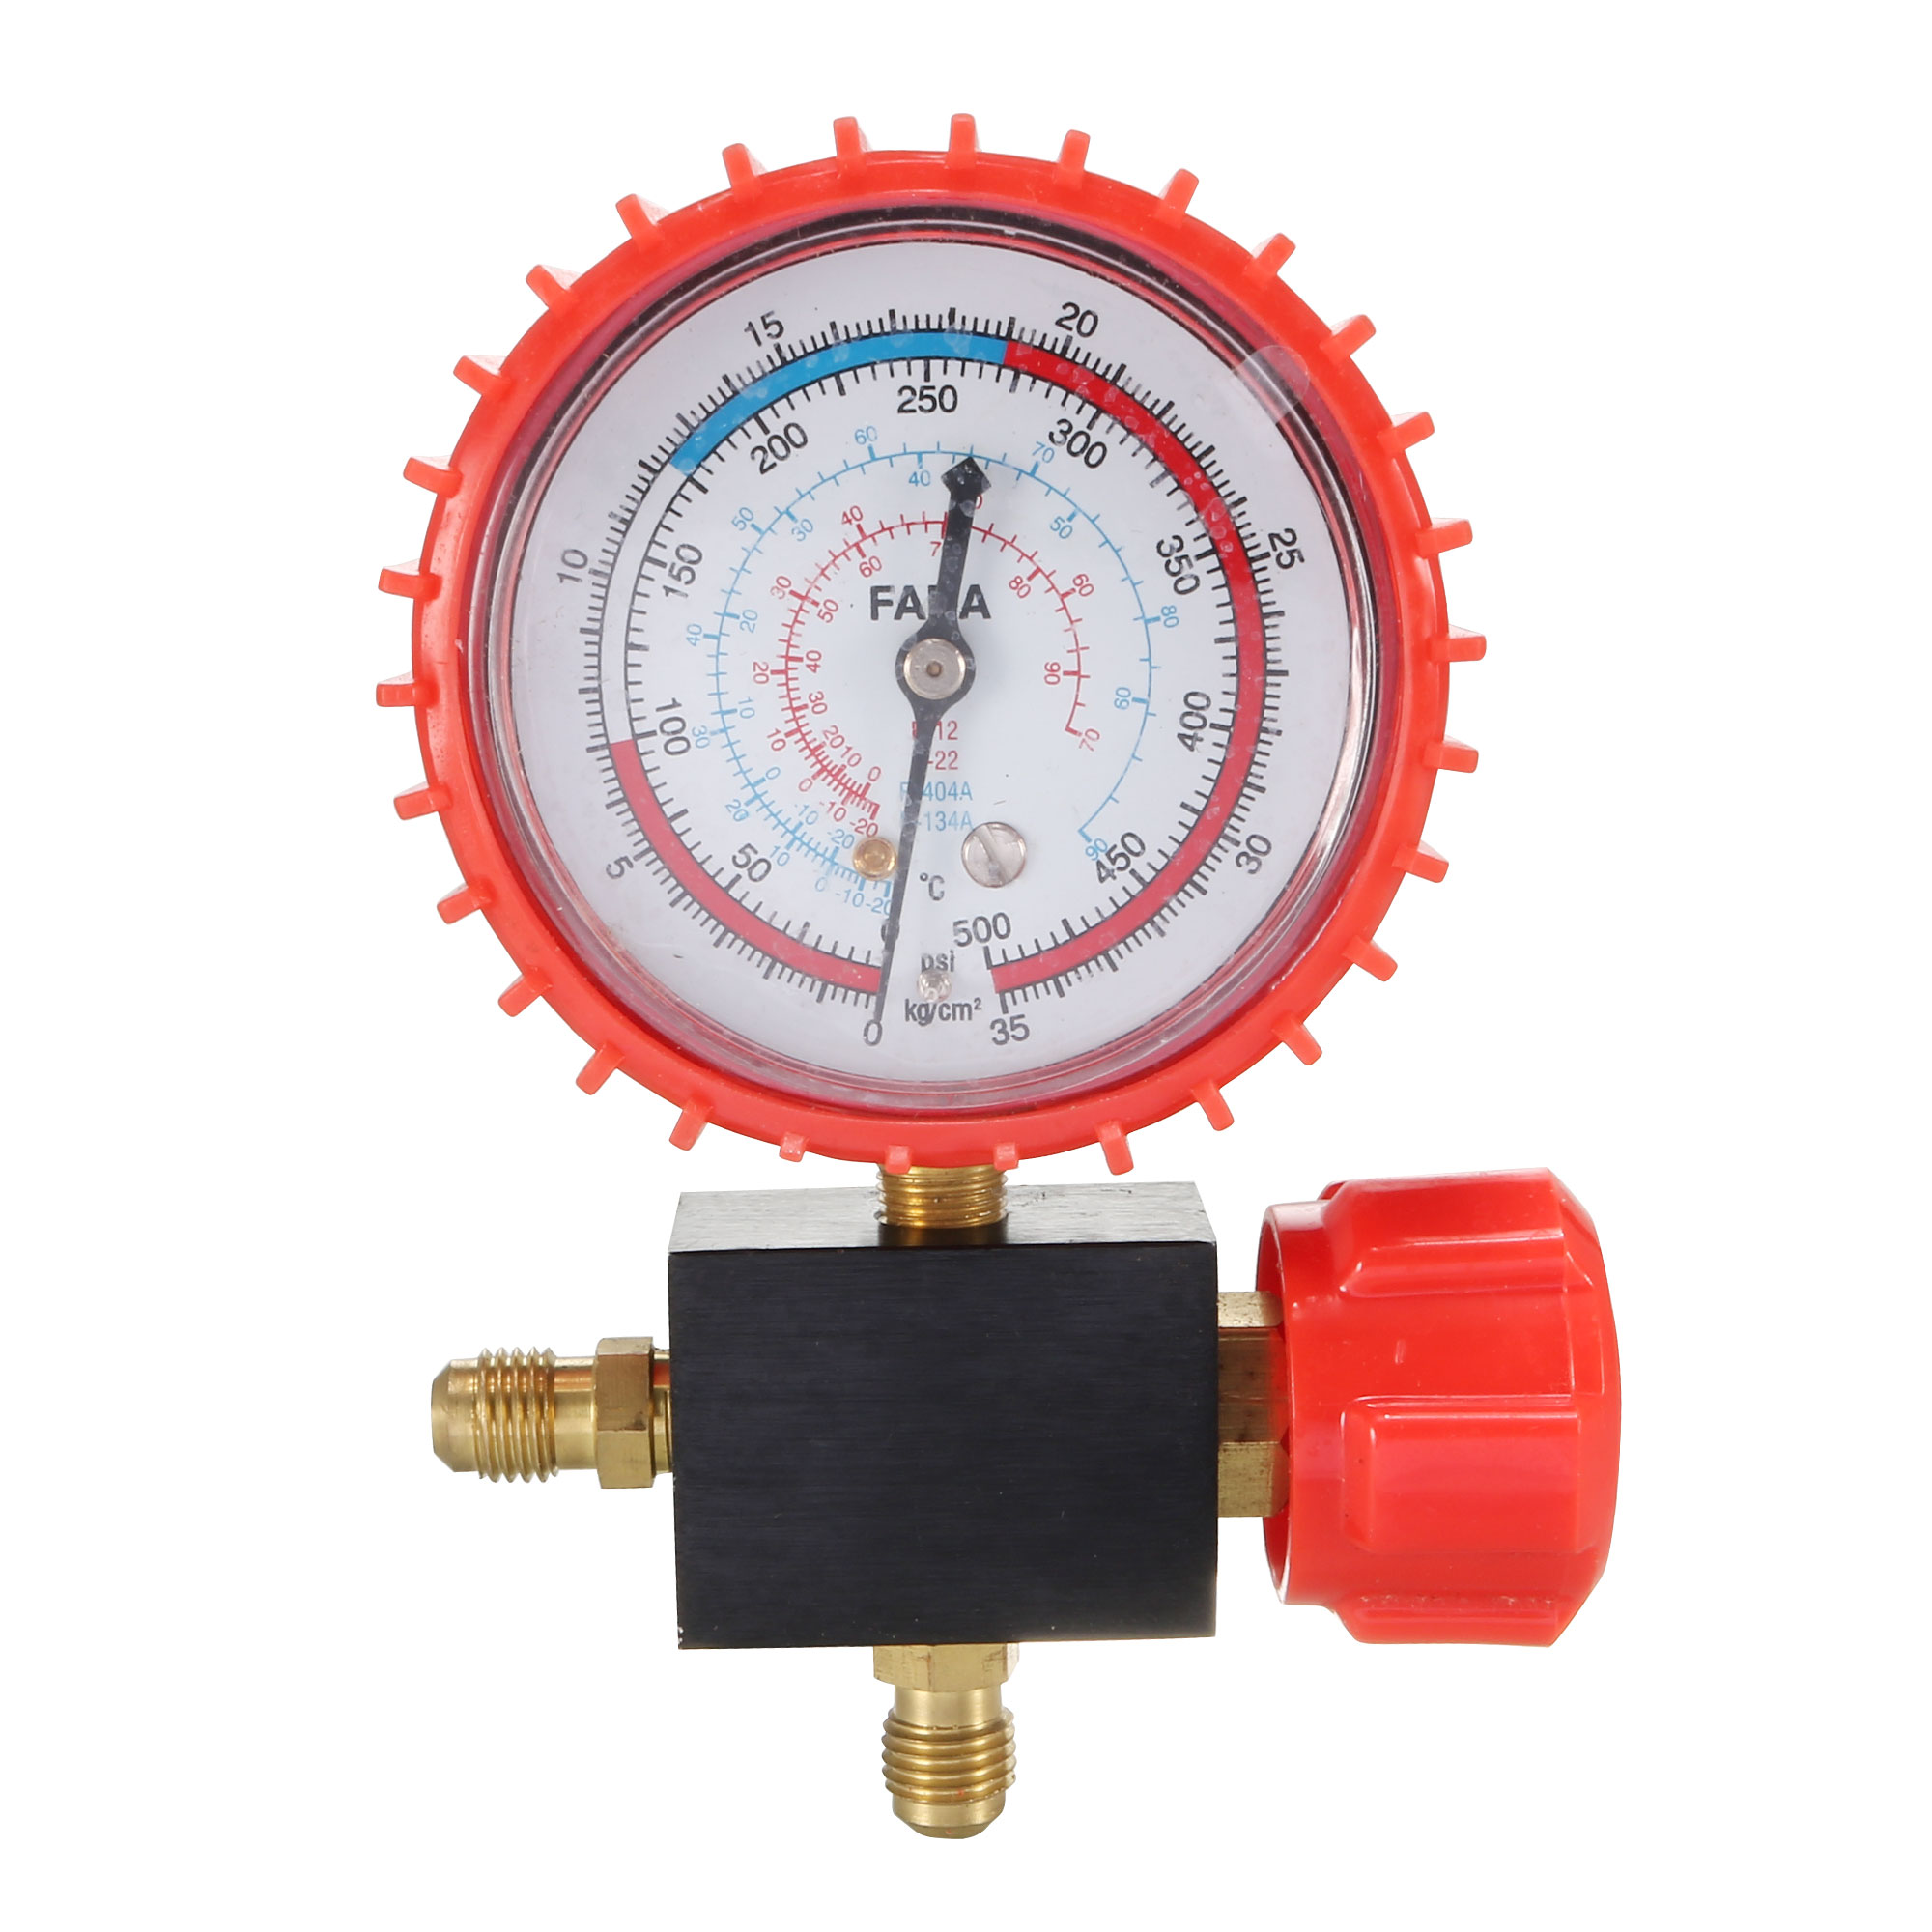 Refrigeration Part 11mm Male Thread Single Manifold Gauge Valve 0-35Kgf/cm2